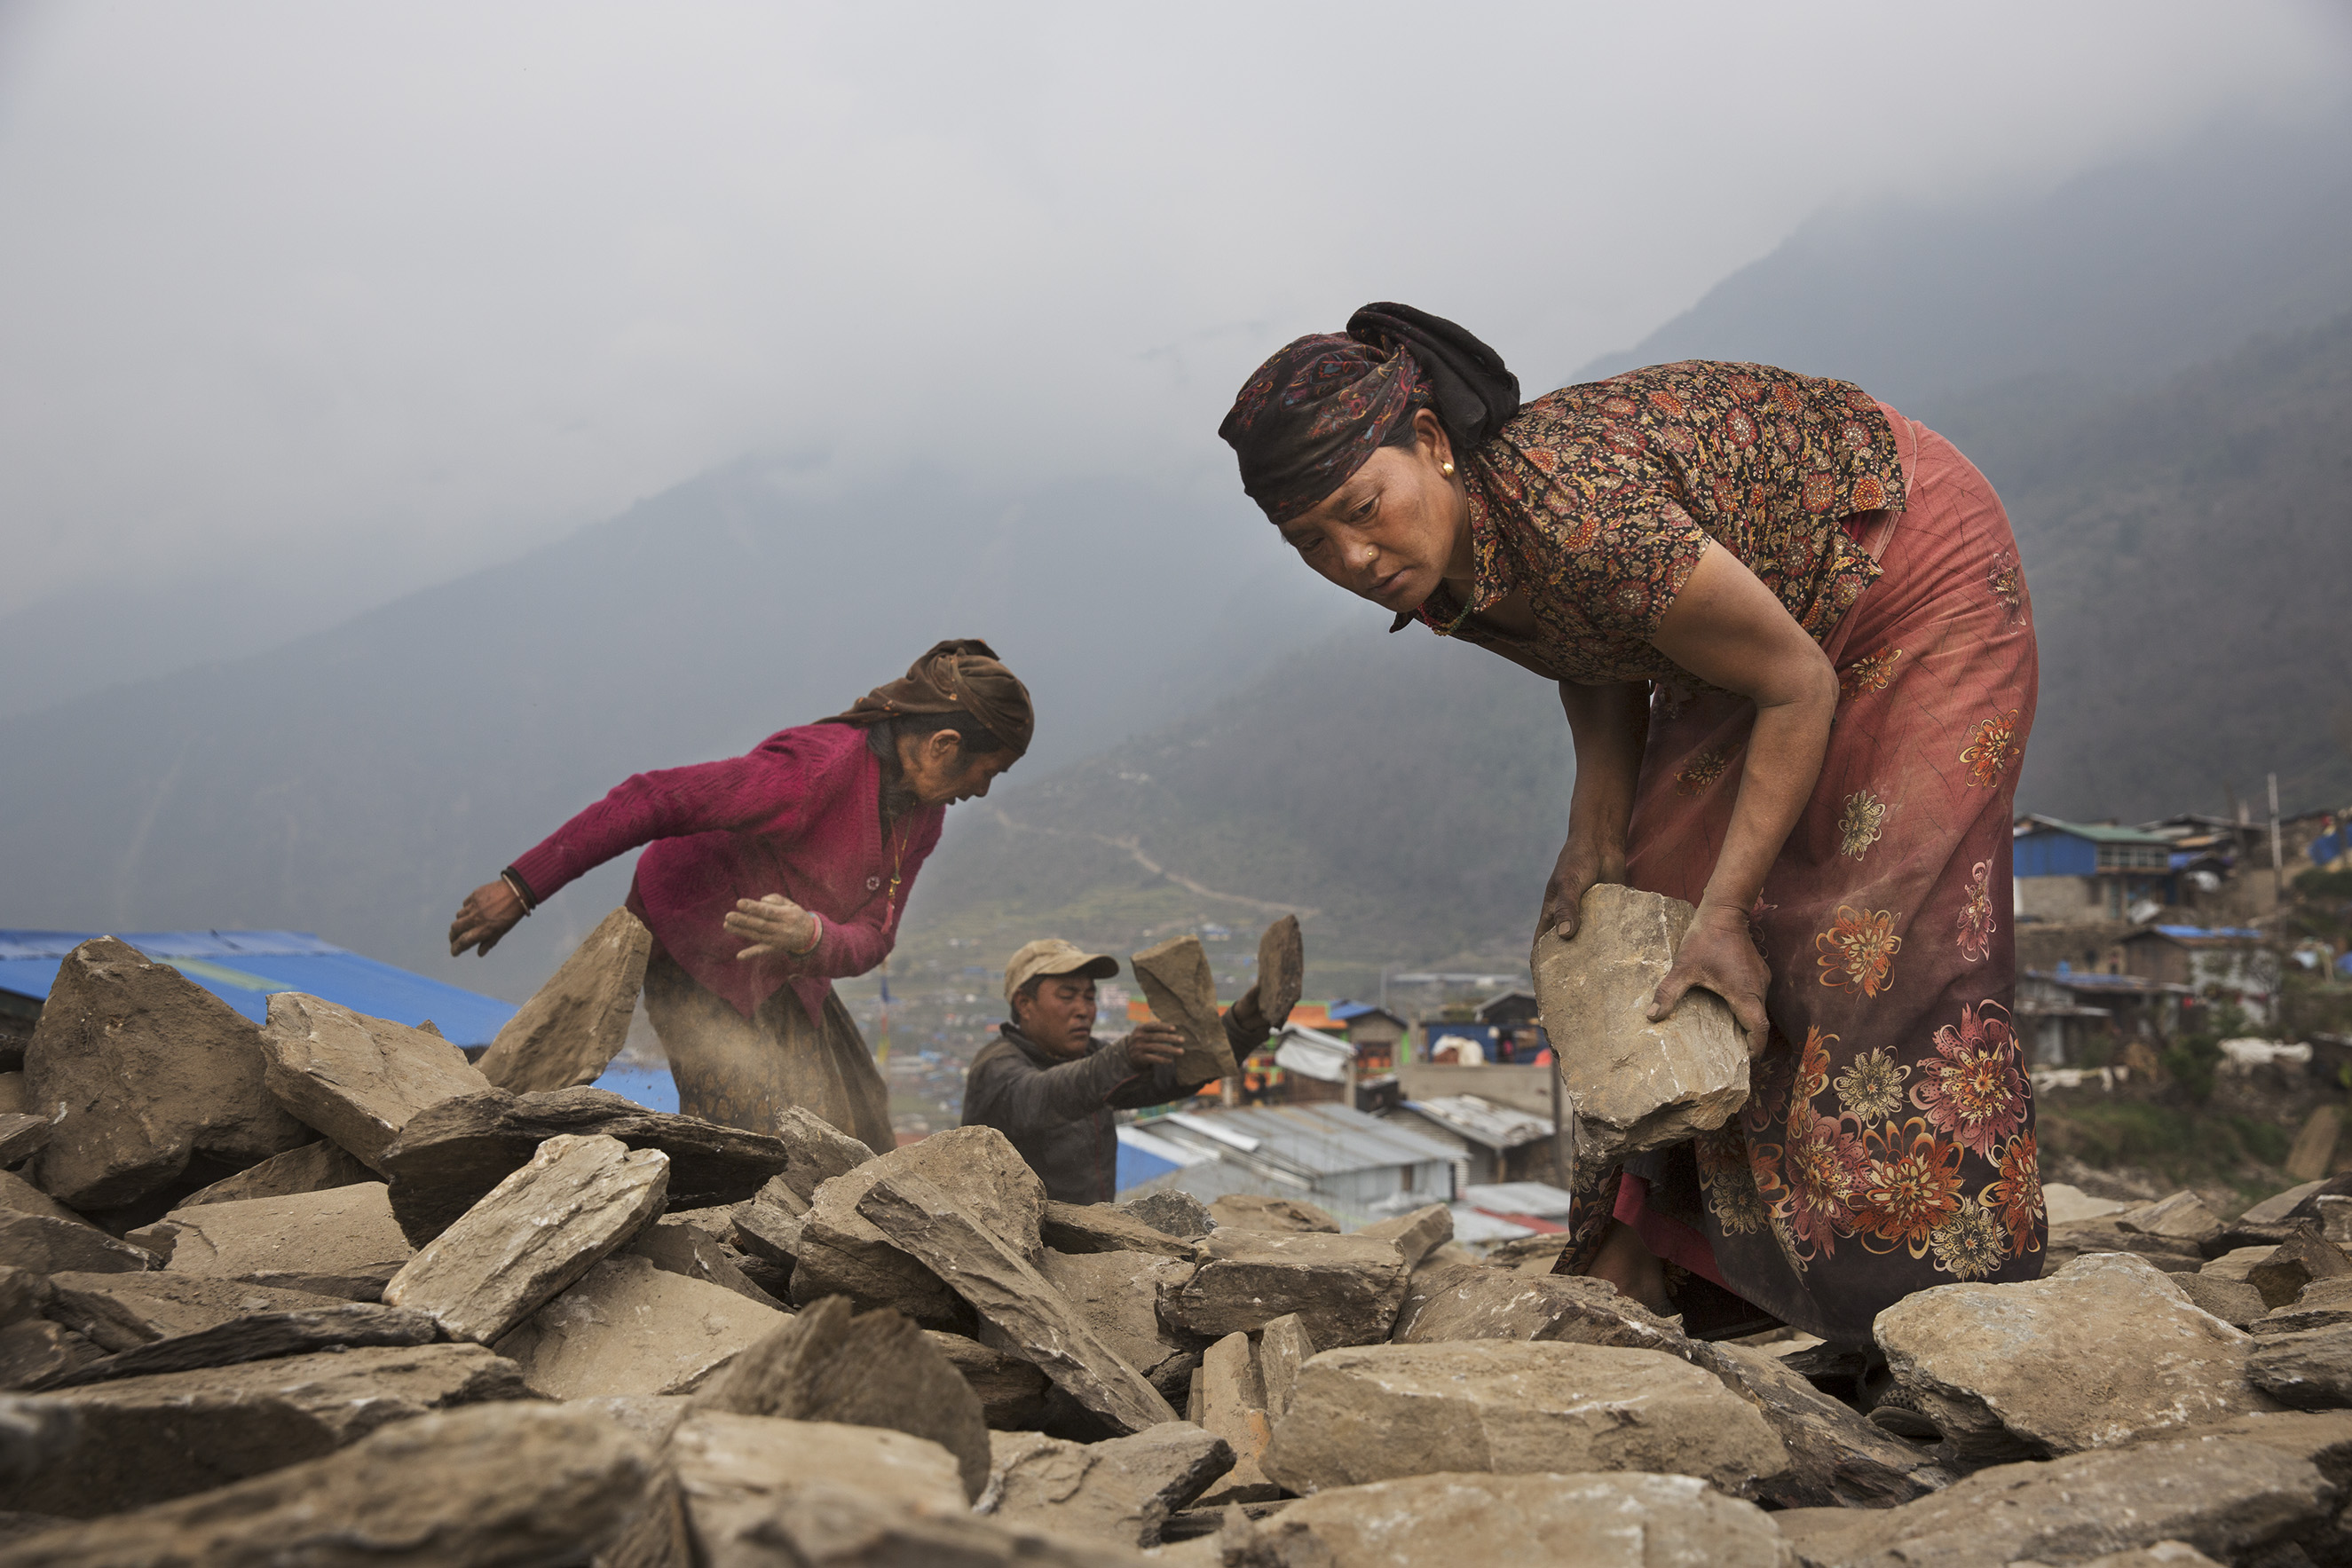 Nearly a year after Nepal's earthquakes of 2015, villagers work at rebuilding with little or no government support, Barpak, Nepal, April 3, 2016.From  James Nachtwey: A Year After the Devastating Earthquake